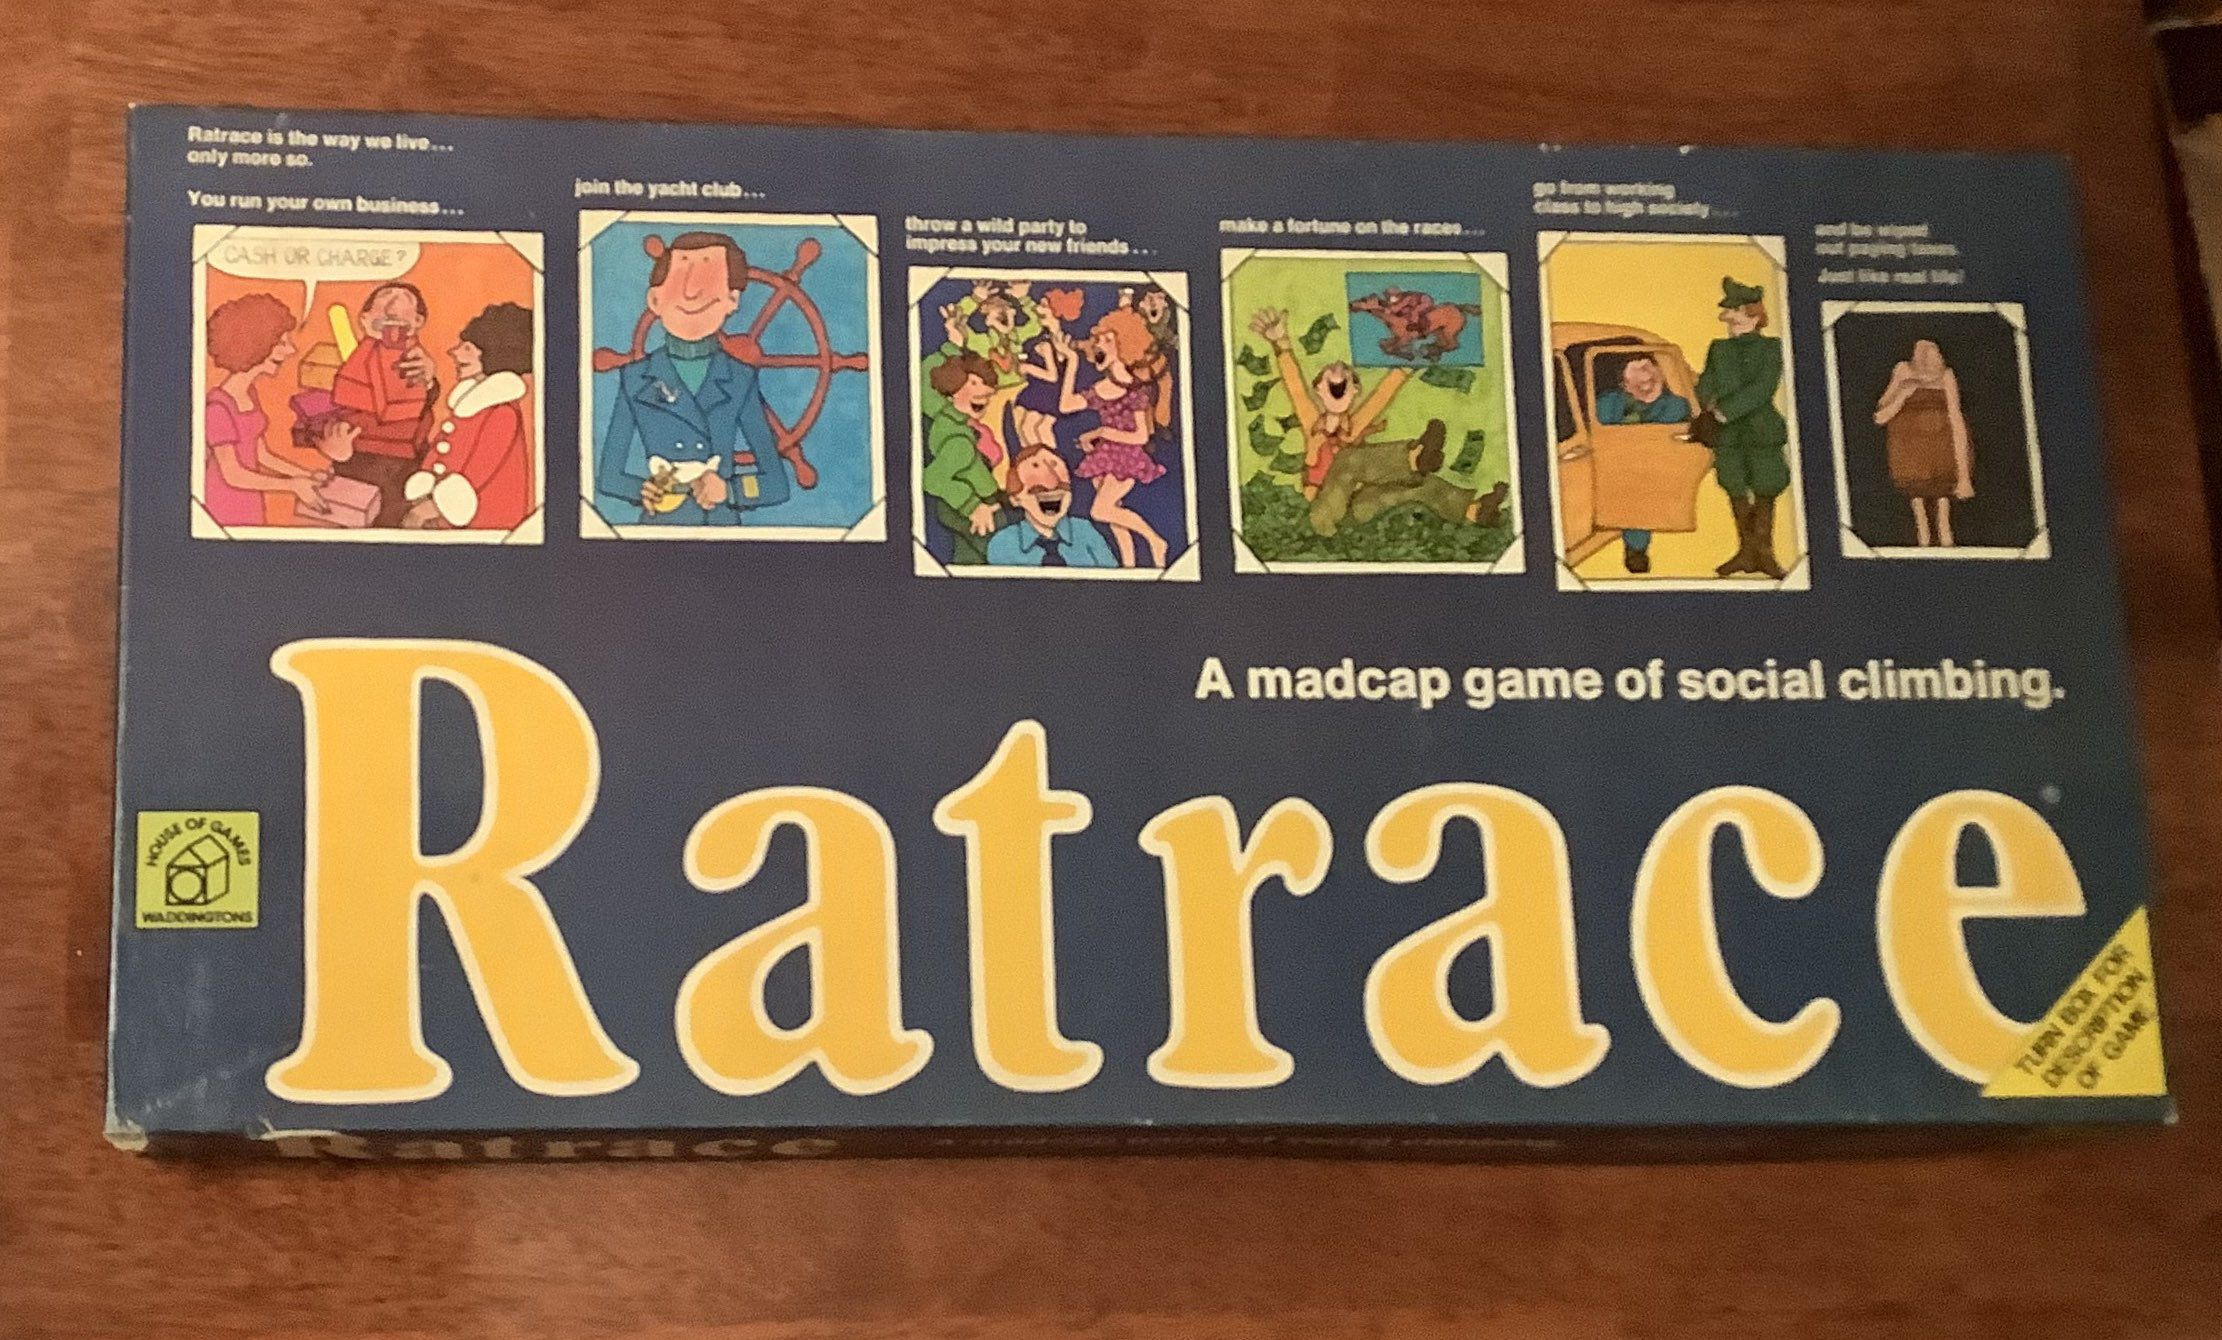 Vintage 1974 Ratrace Board Game (With images) Board